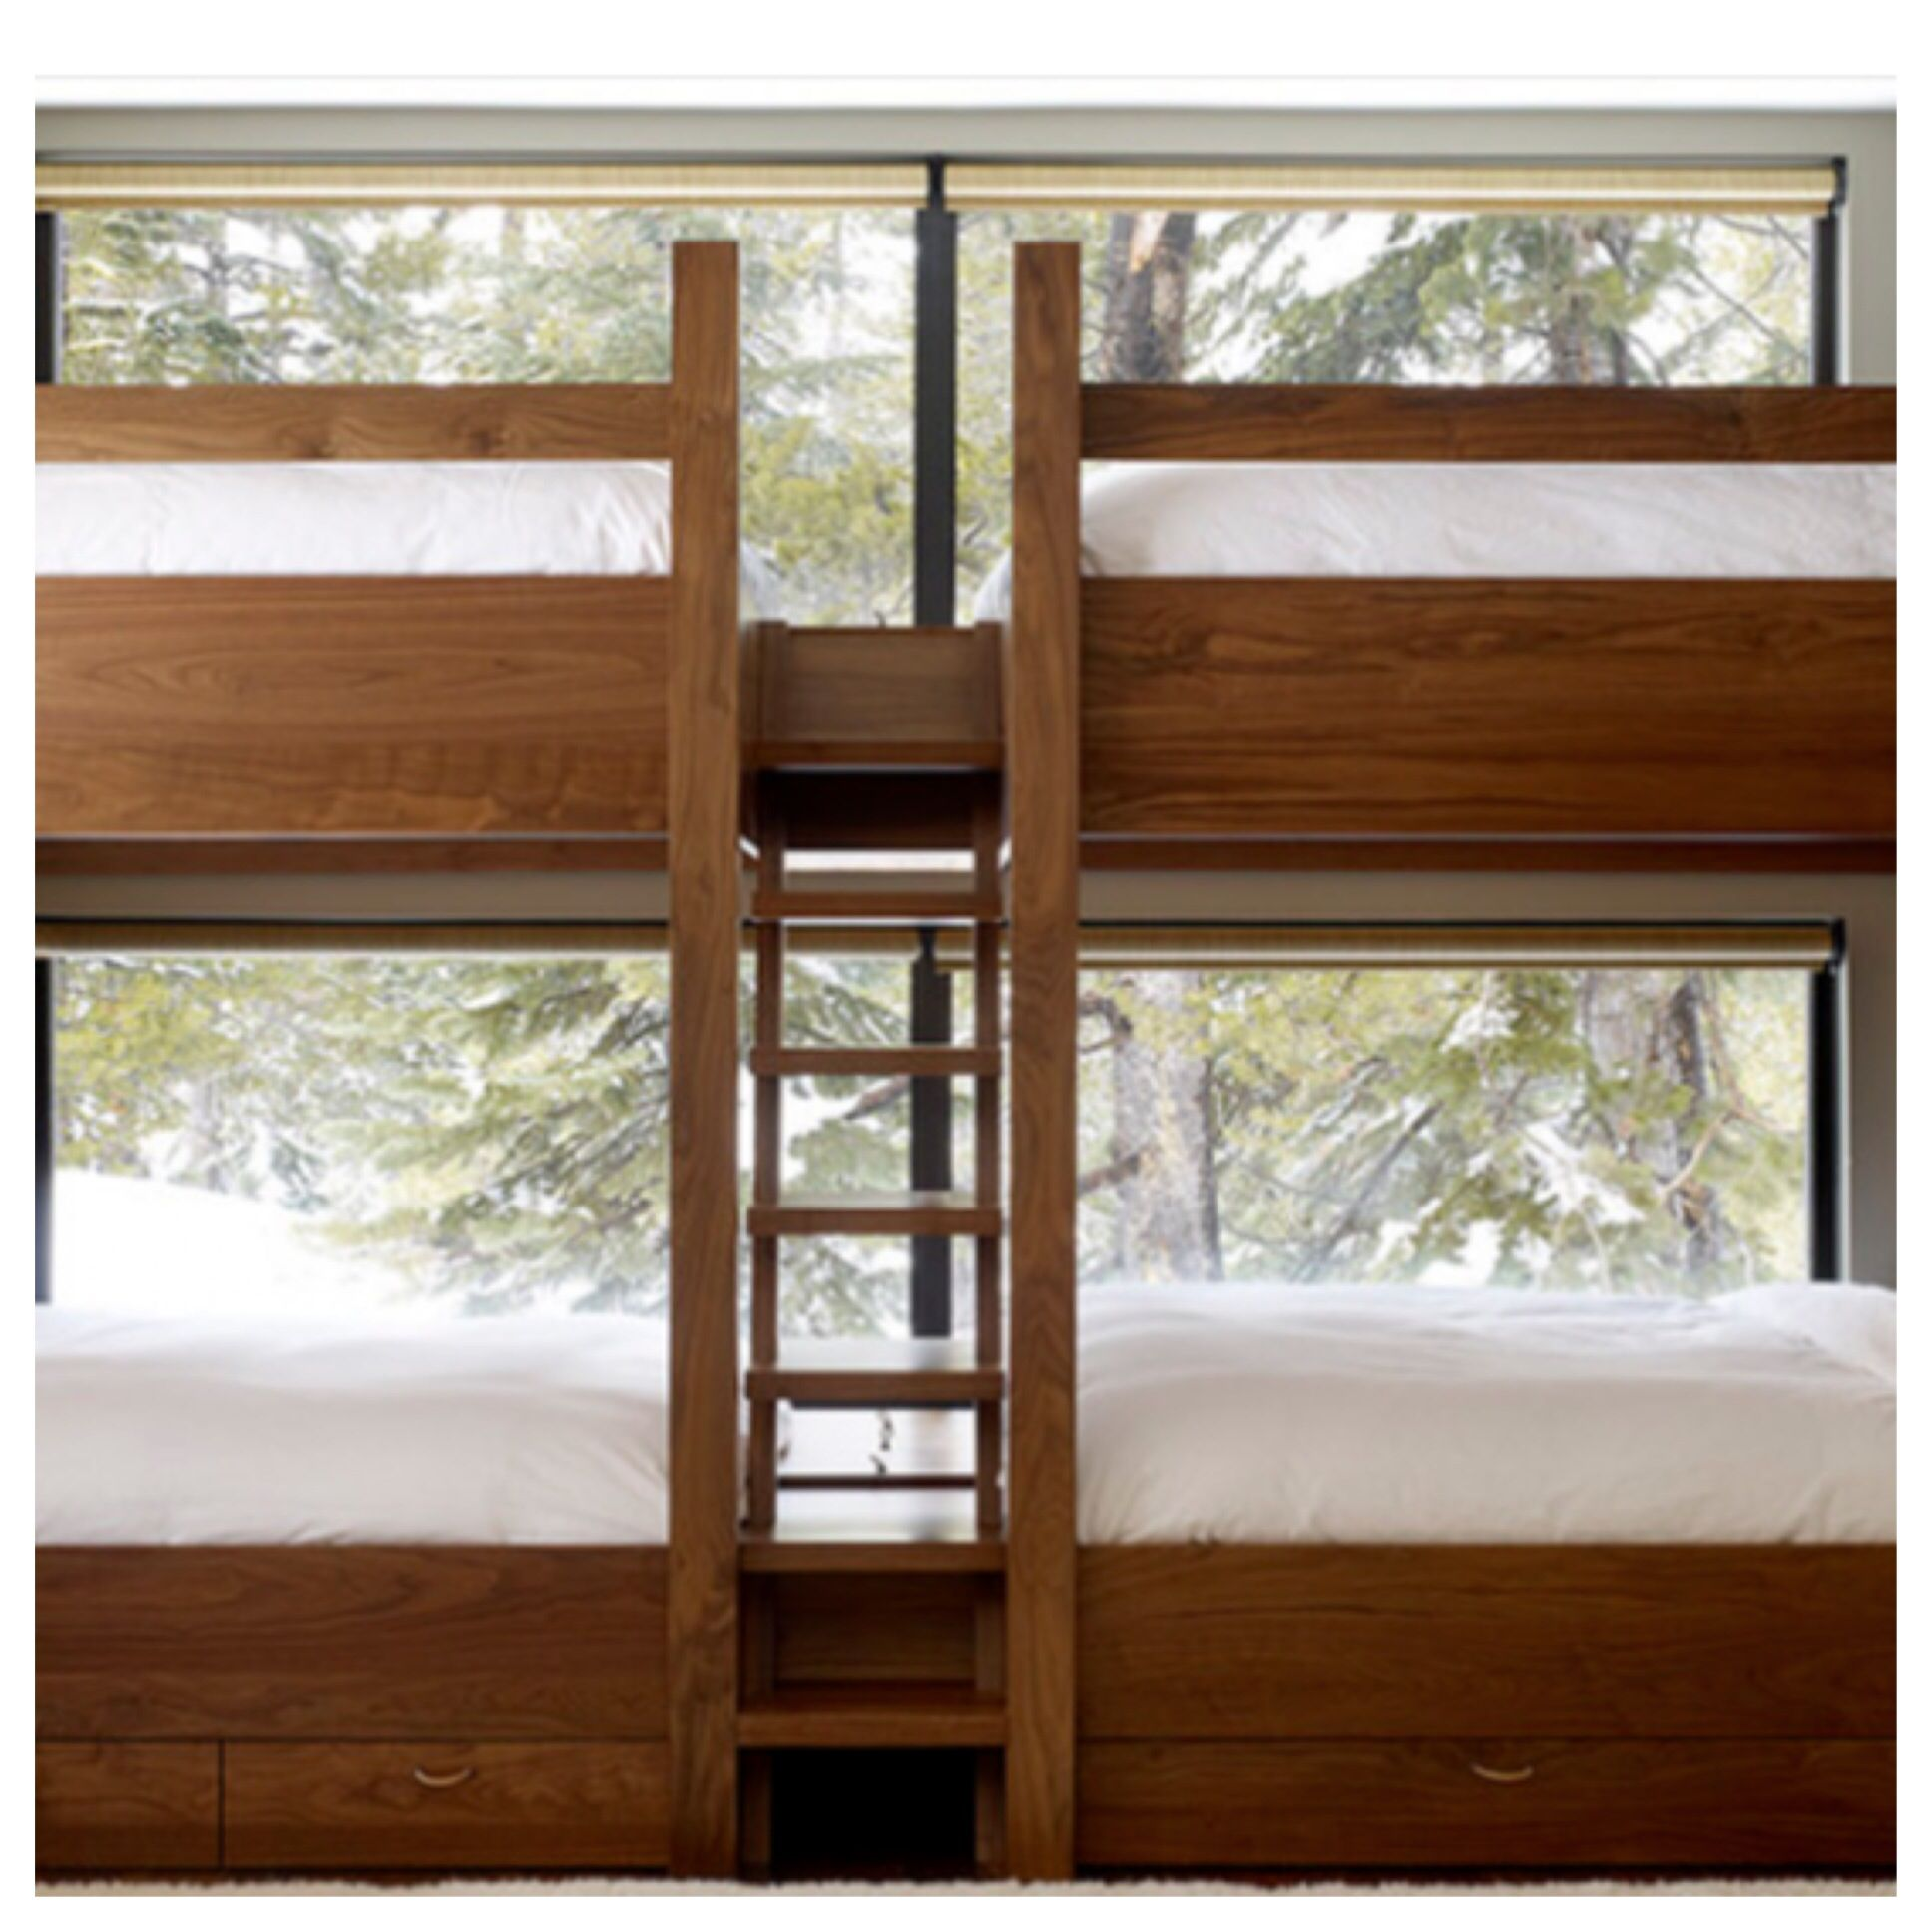 Modern loft bed ideas  beds bunk bed  BedRooms  Pinterest  Bunk bed and Bedrooms